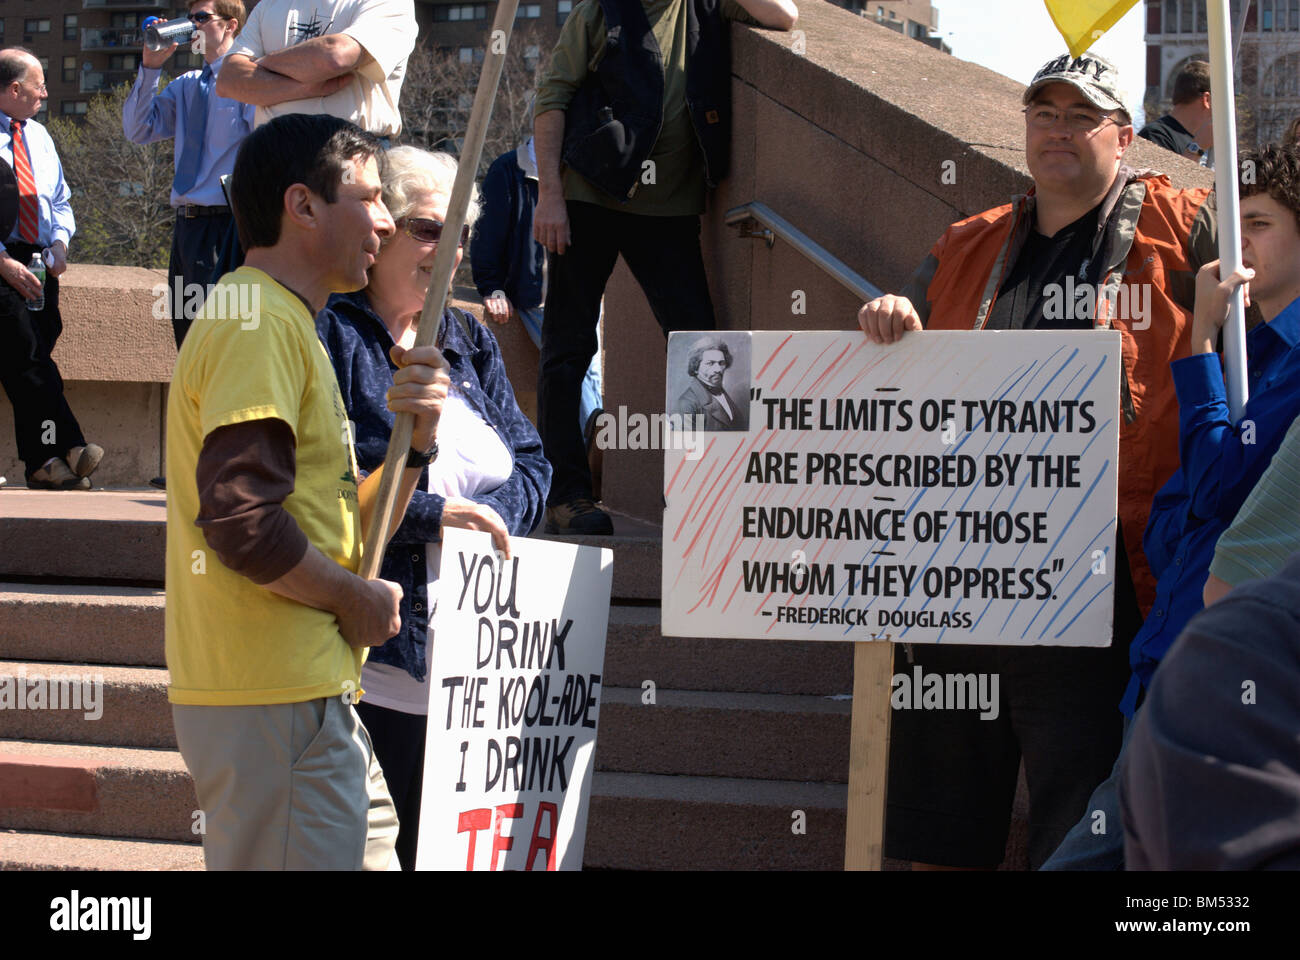 Teaparty activist gather to demonstrate for freedom from government intrusions in health care and more. - Stock Image